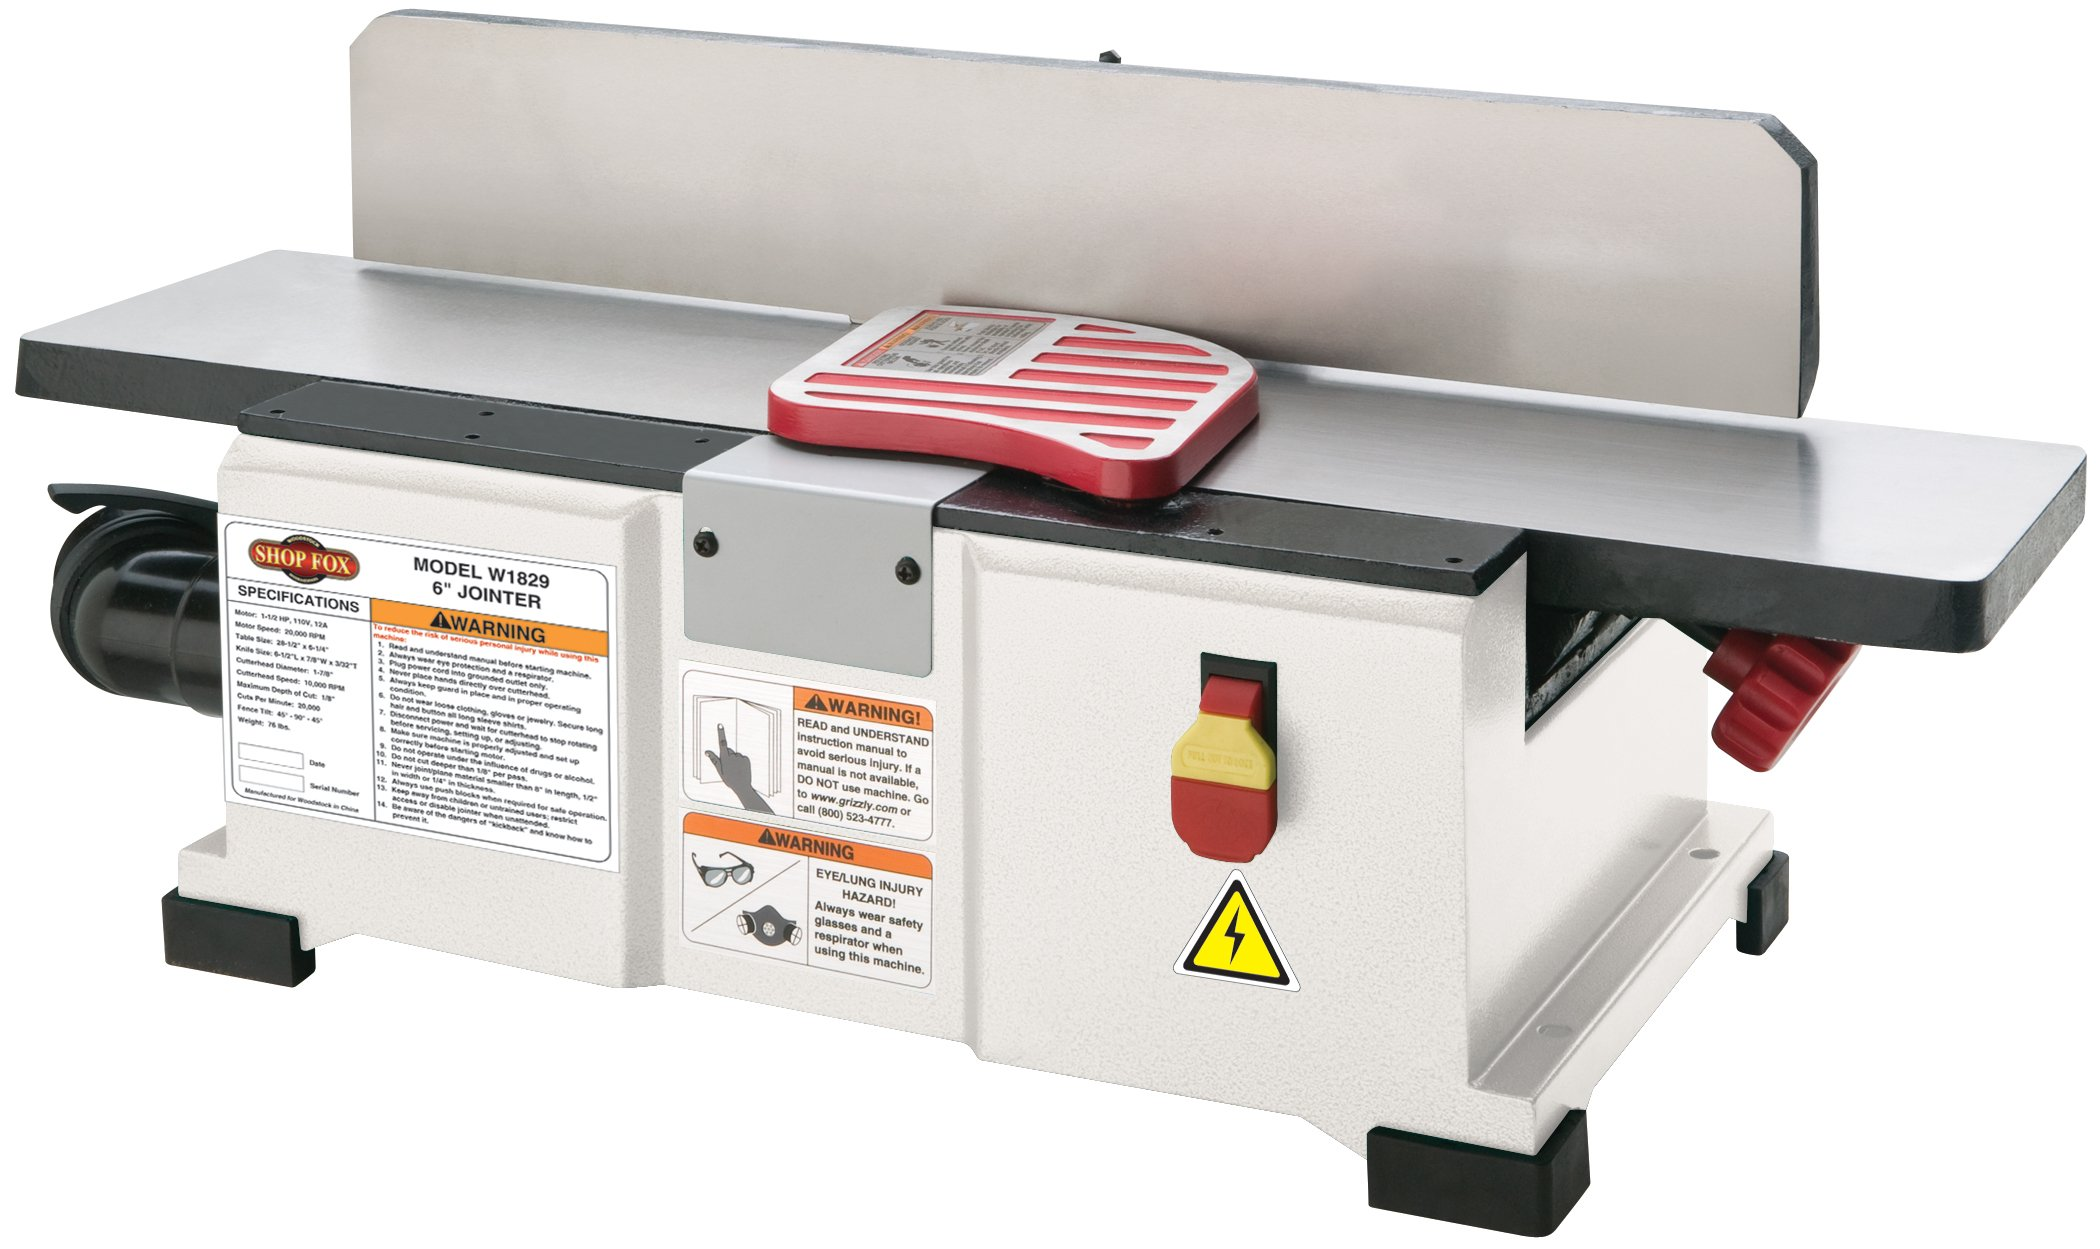 Shop Fox W1829 Benchtop Jointer, 6-Inch by Shop Fox (Image #1)